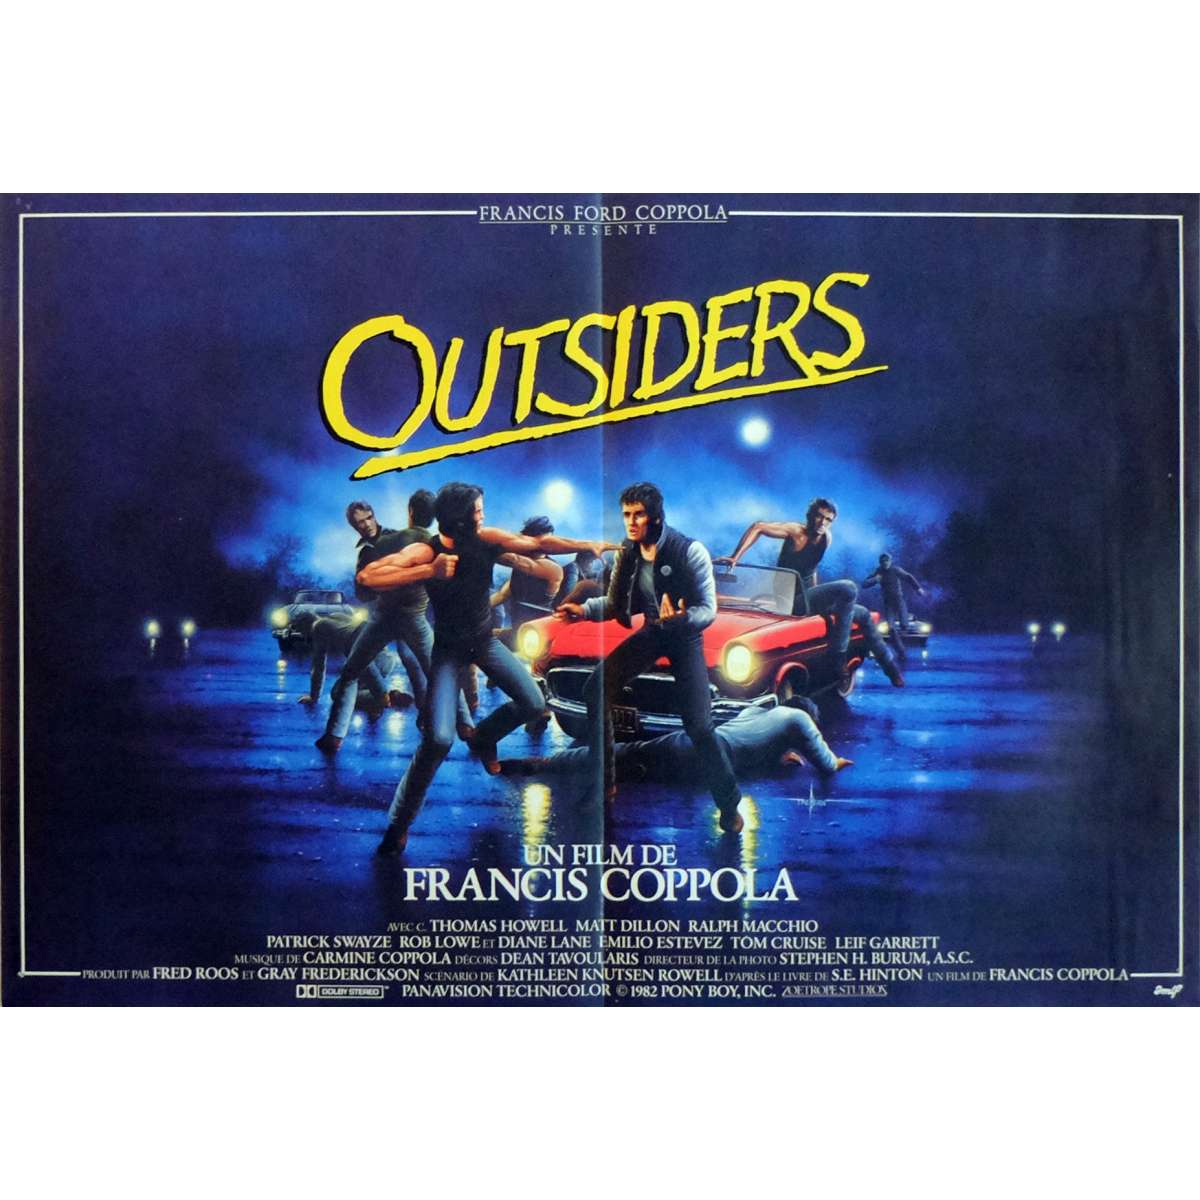 an analysis of the outsiders club directed by francis ford coppola